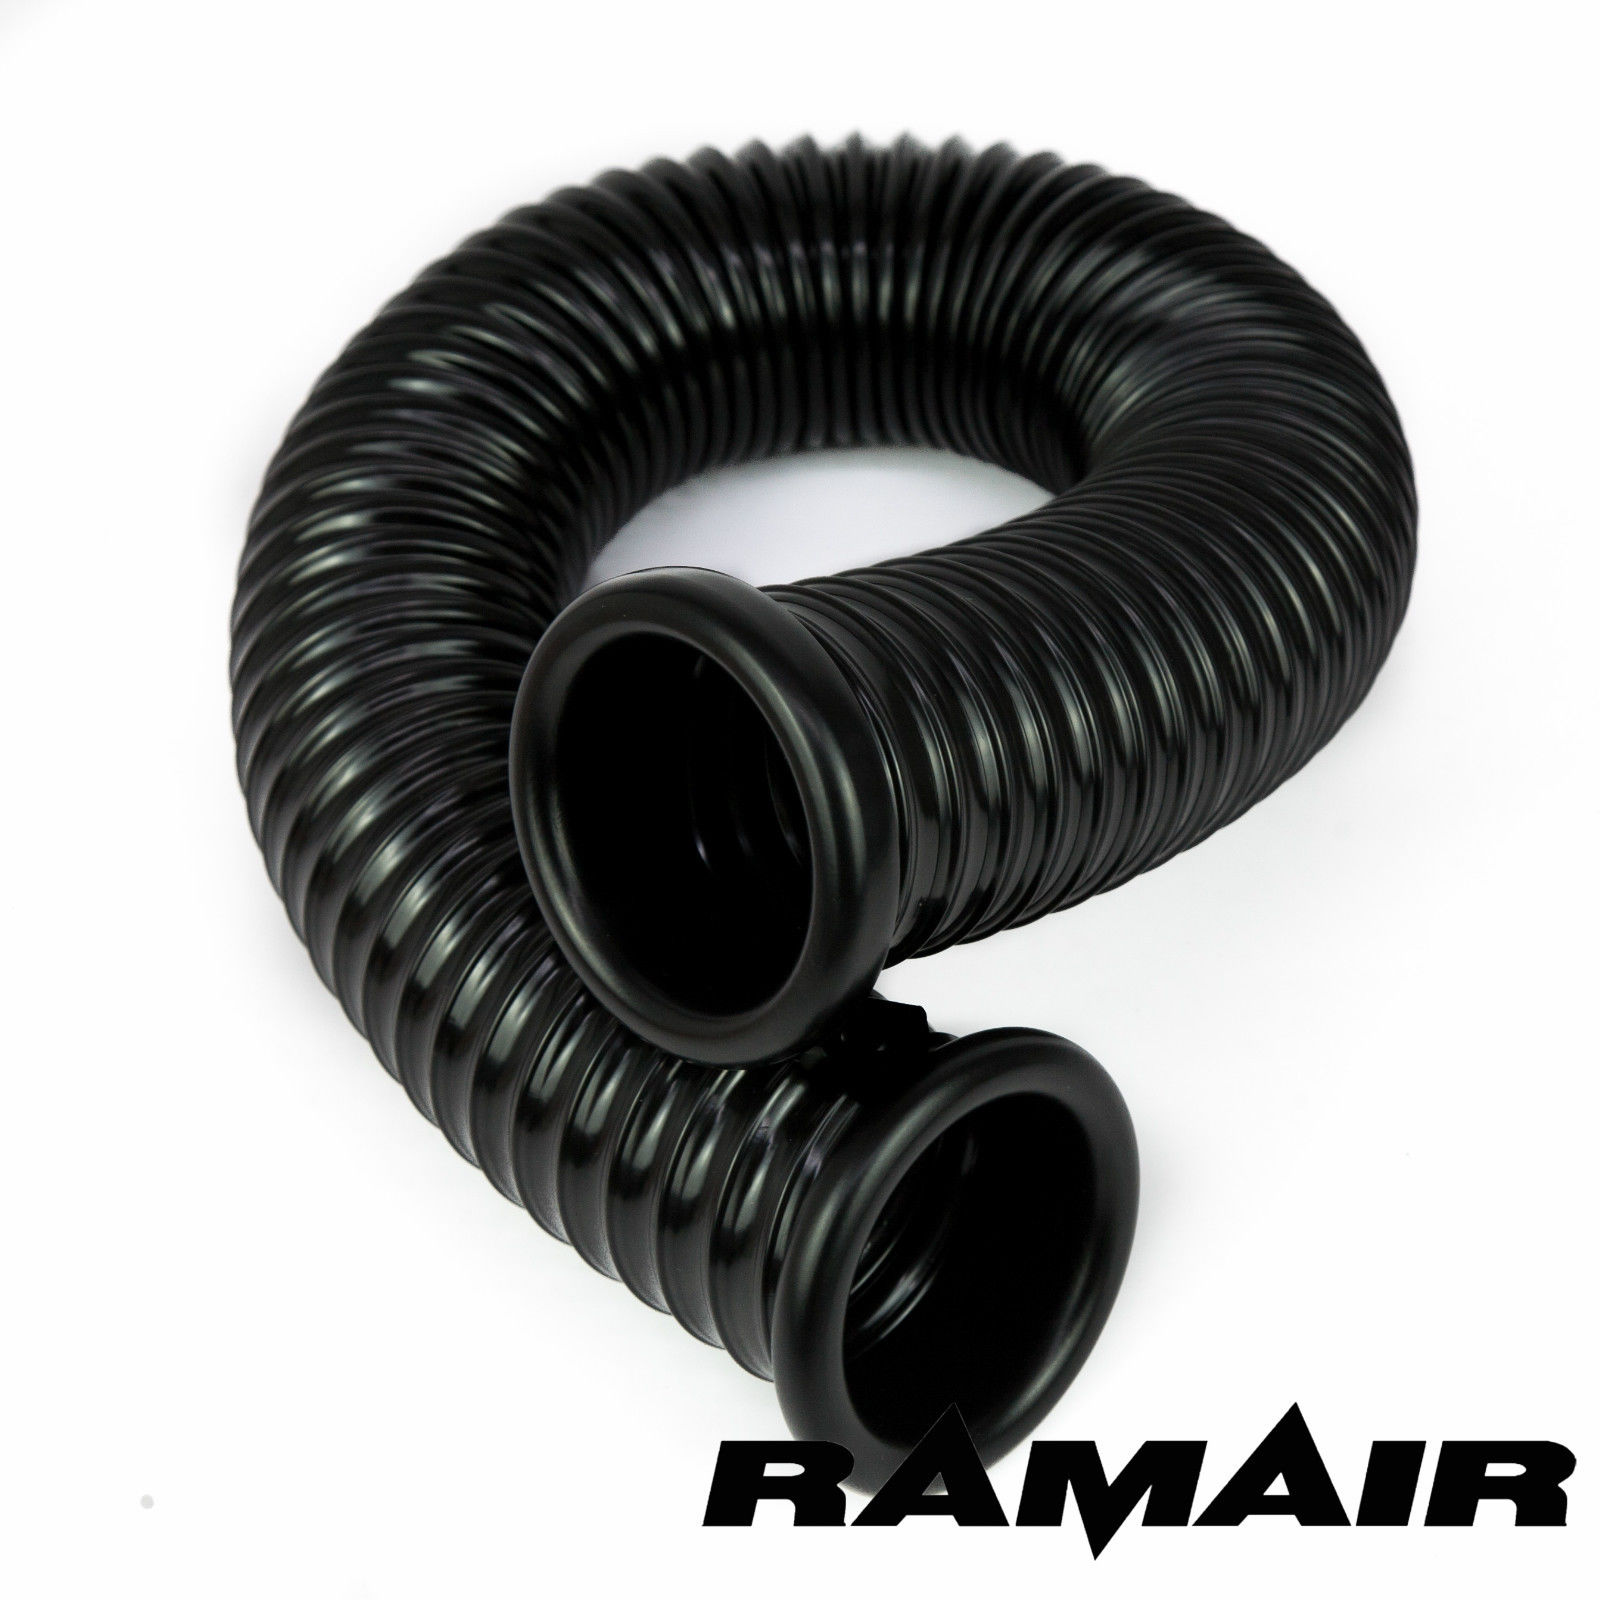 Ramair black pvc cold air feed ducting hose for induction